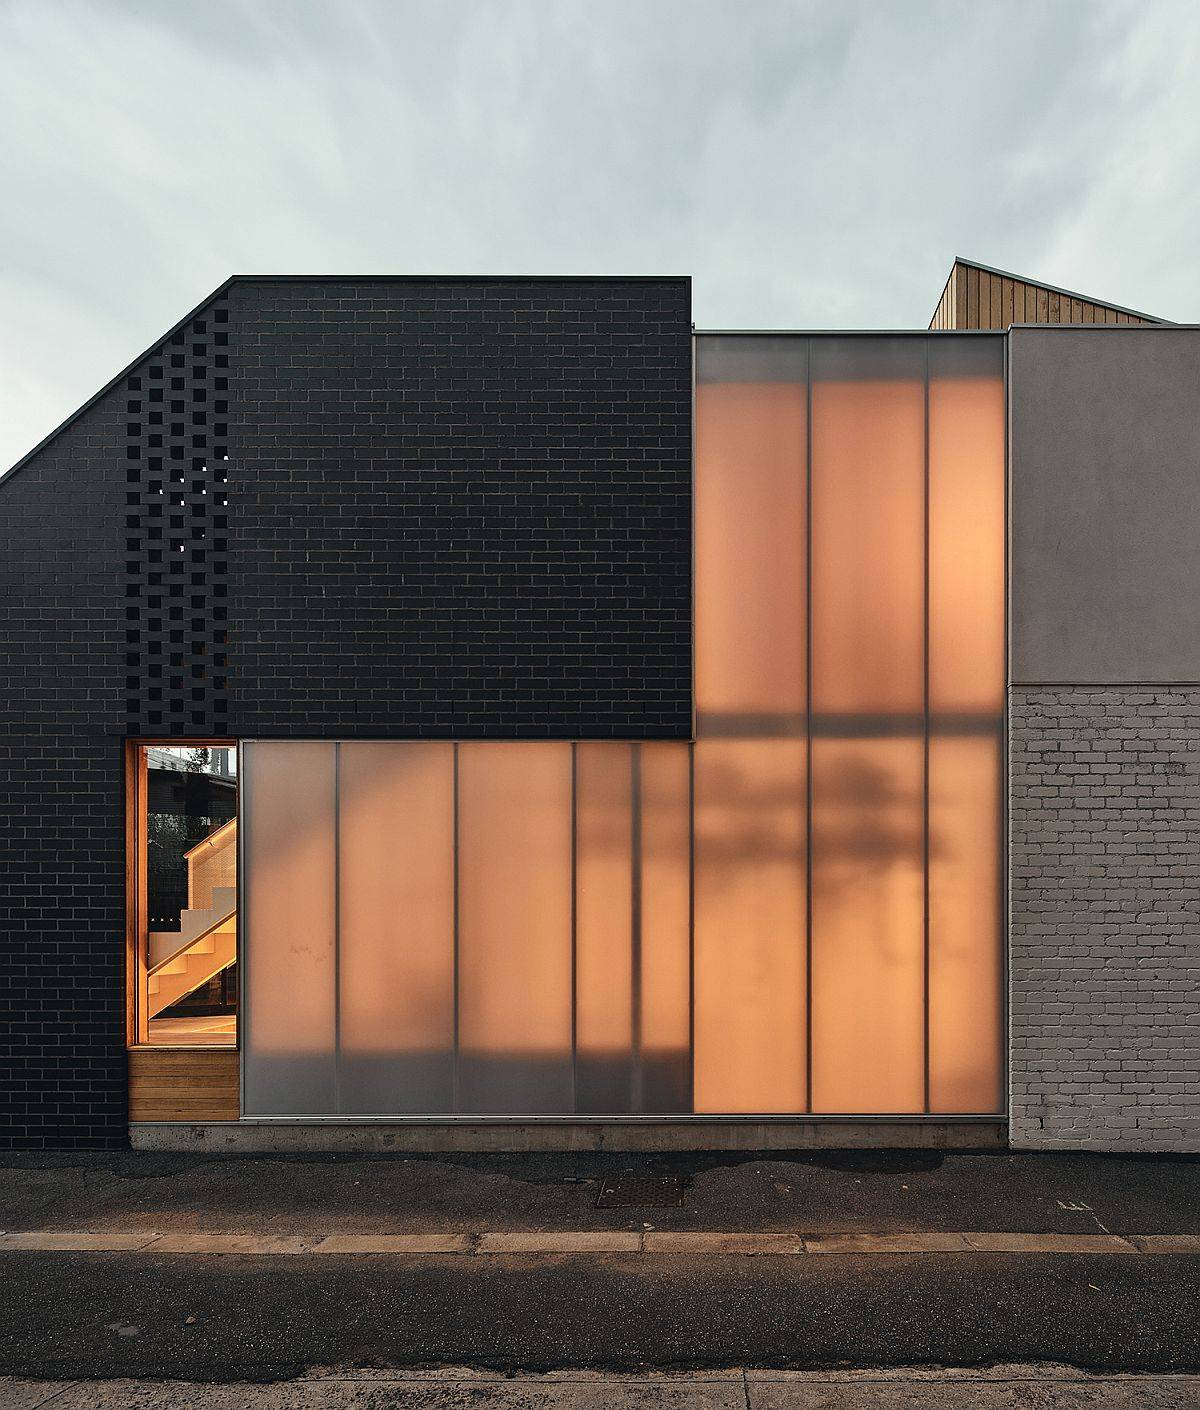 Ingenious use of polycarbonate panels bring in natural light while maintaining privacy